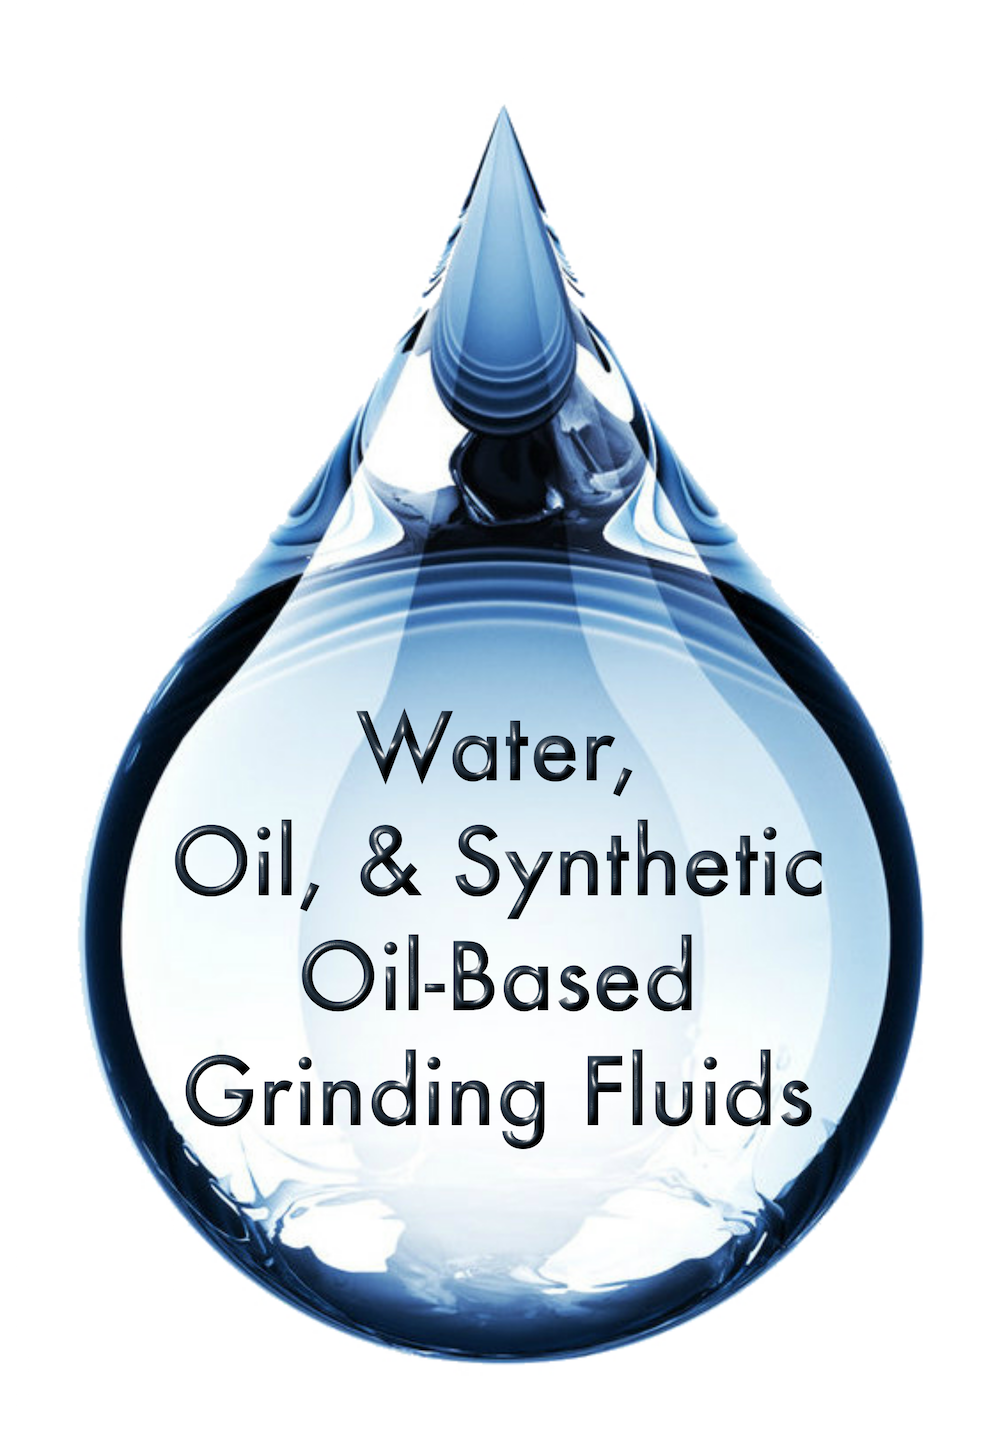 Water, Oil, and Synthetic Oil-Based Grinding Fluids